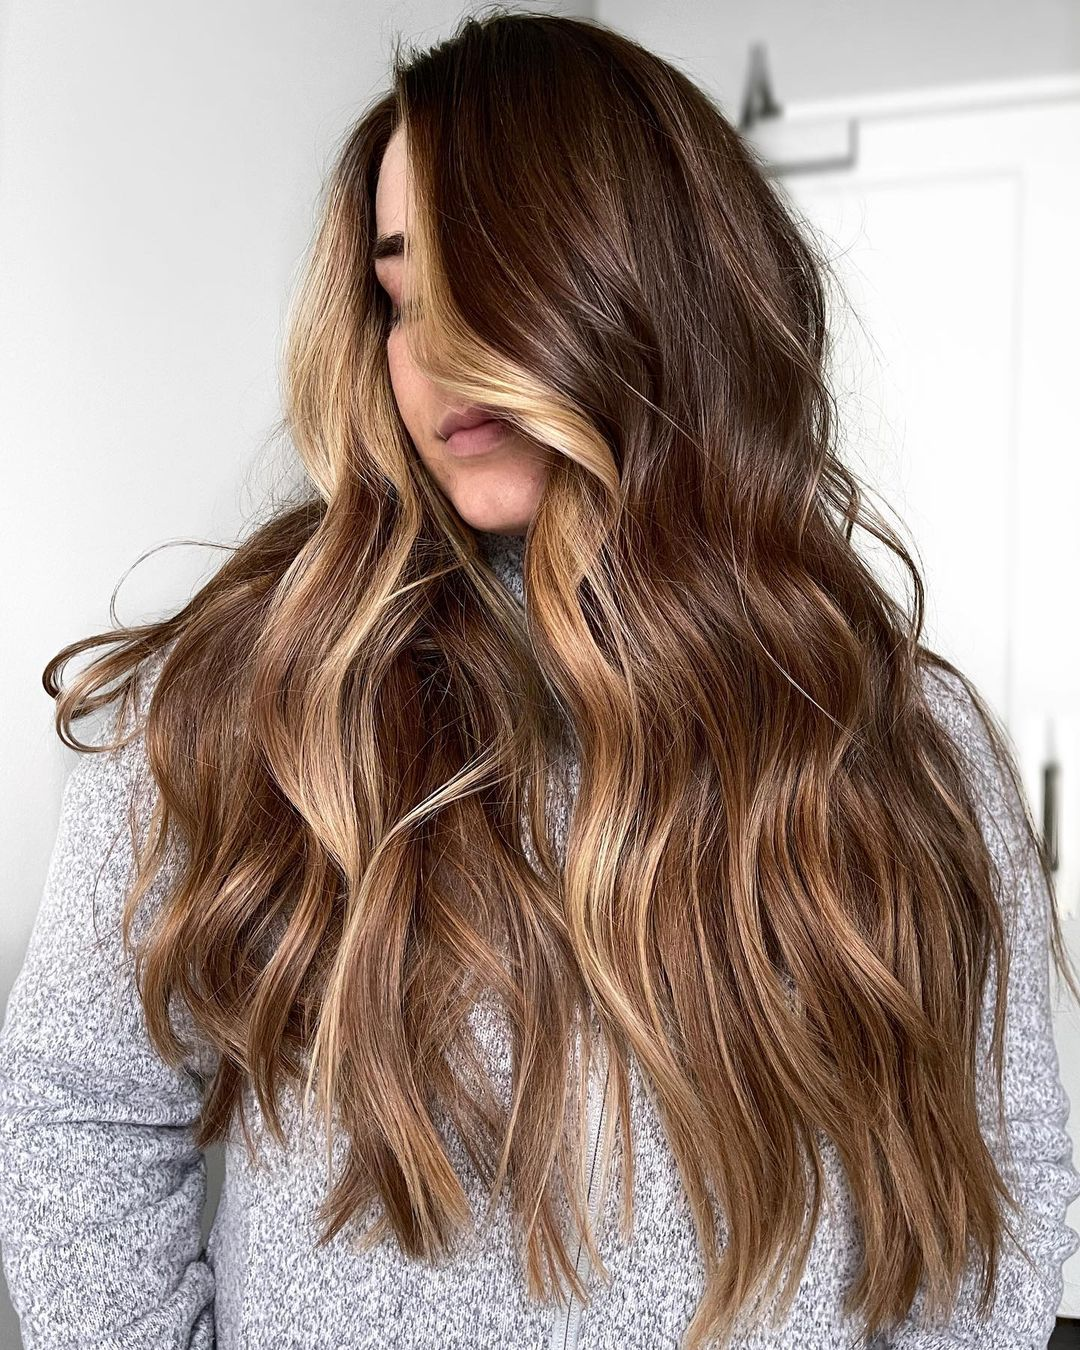 Golden Brown and Blonde Balayage